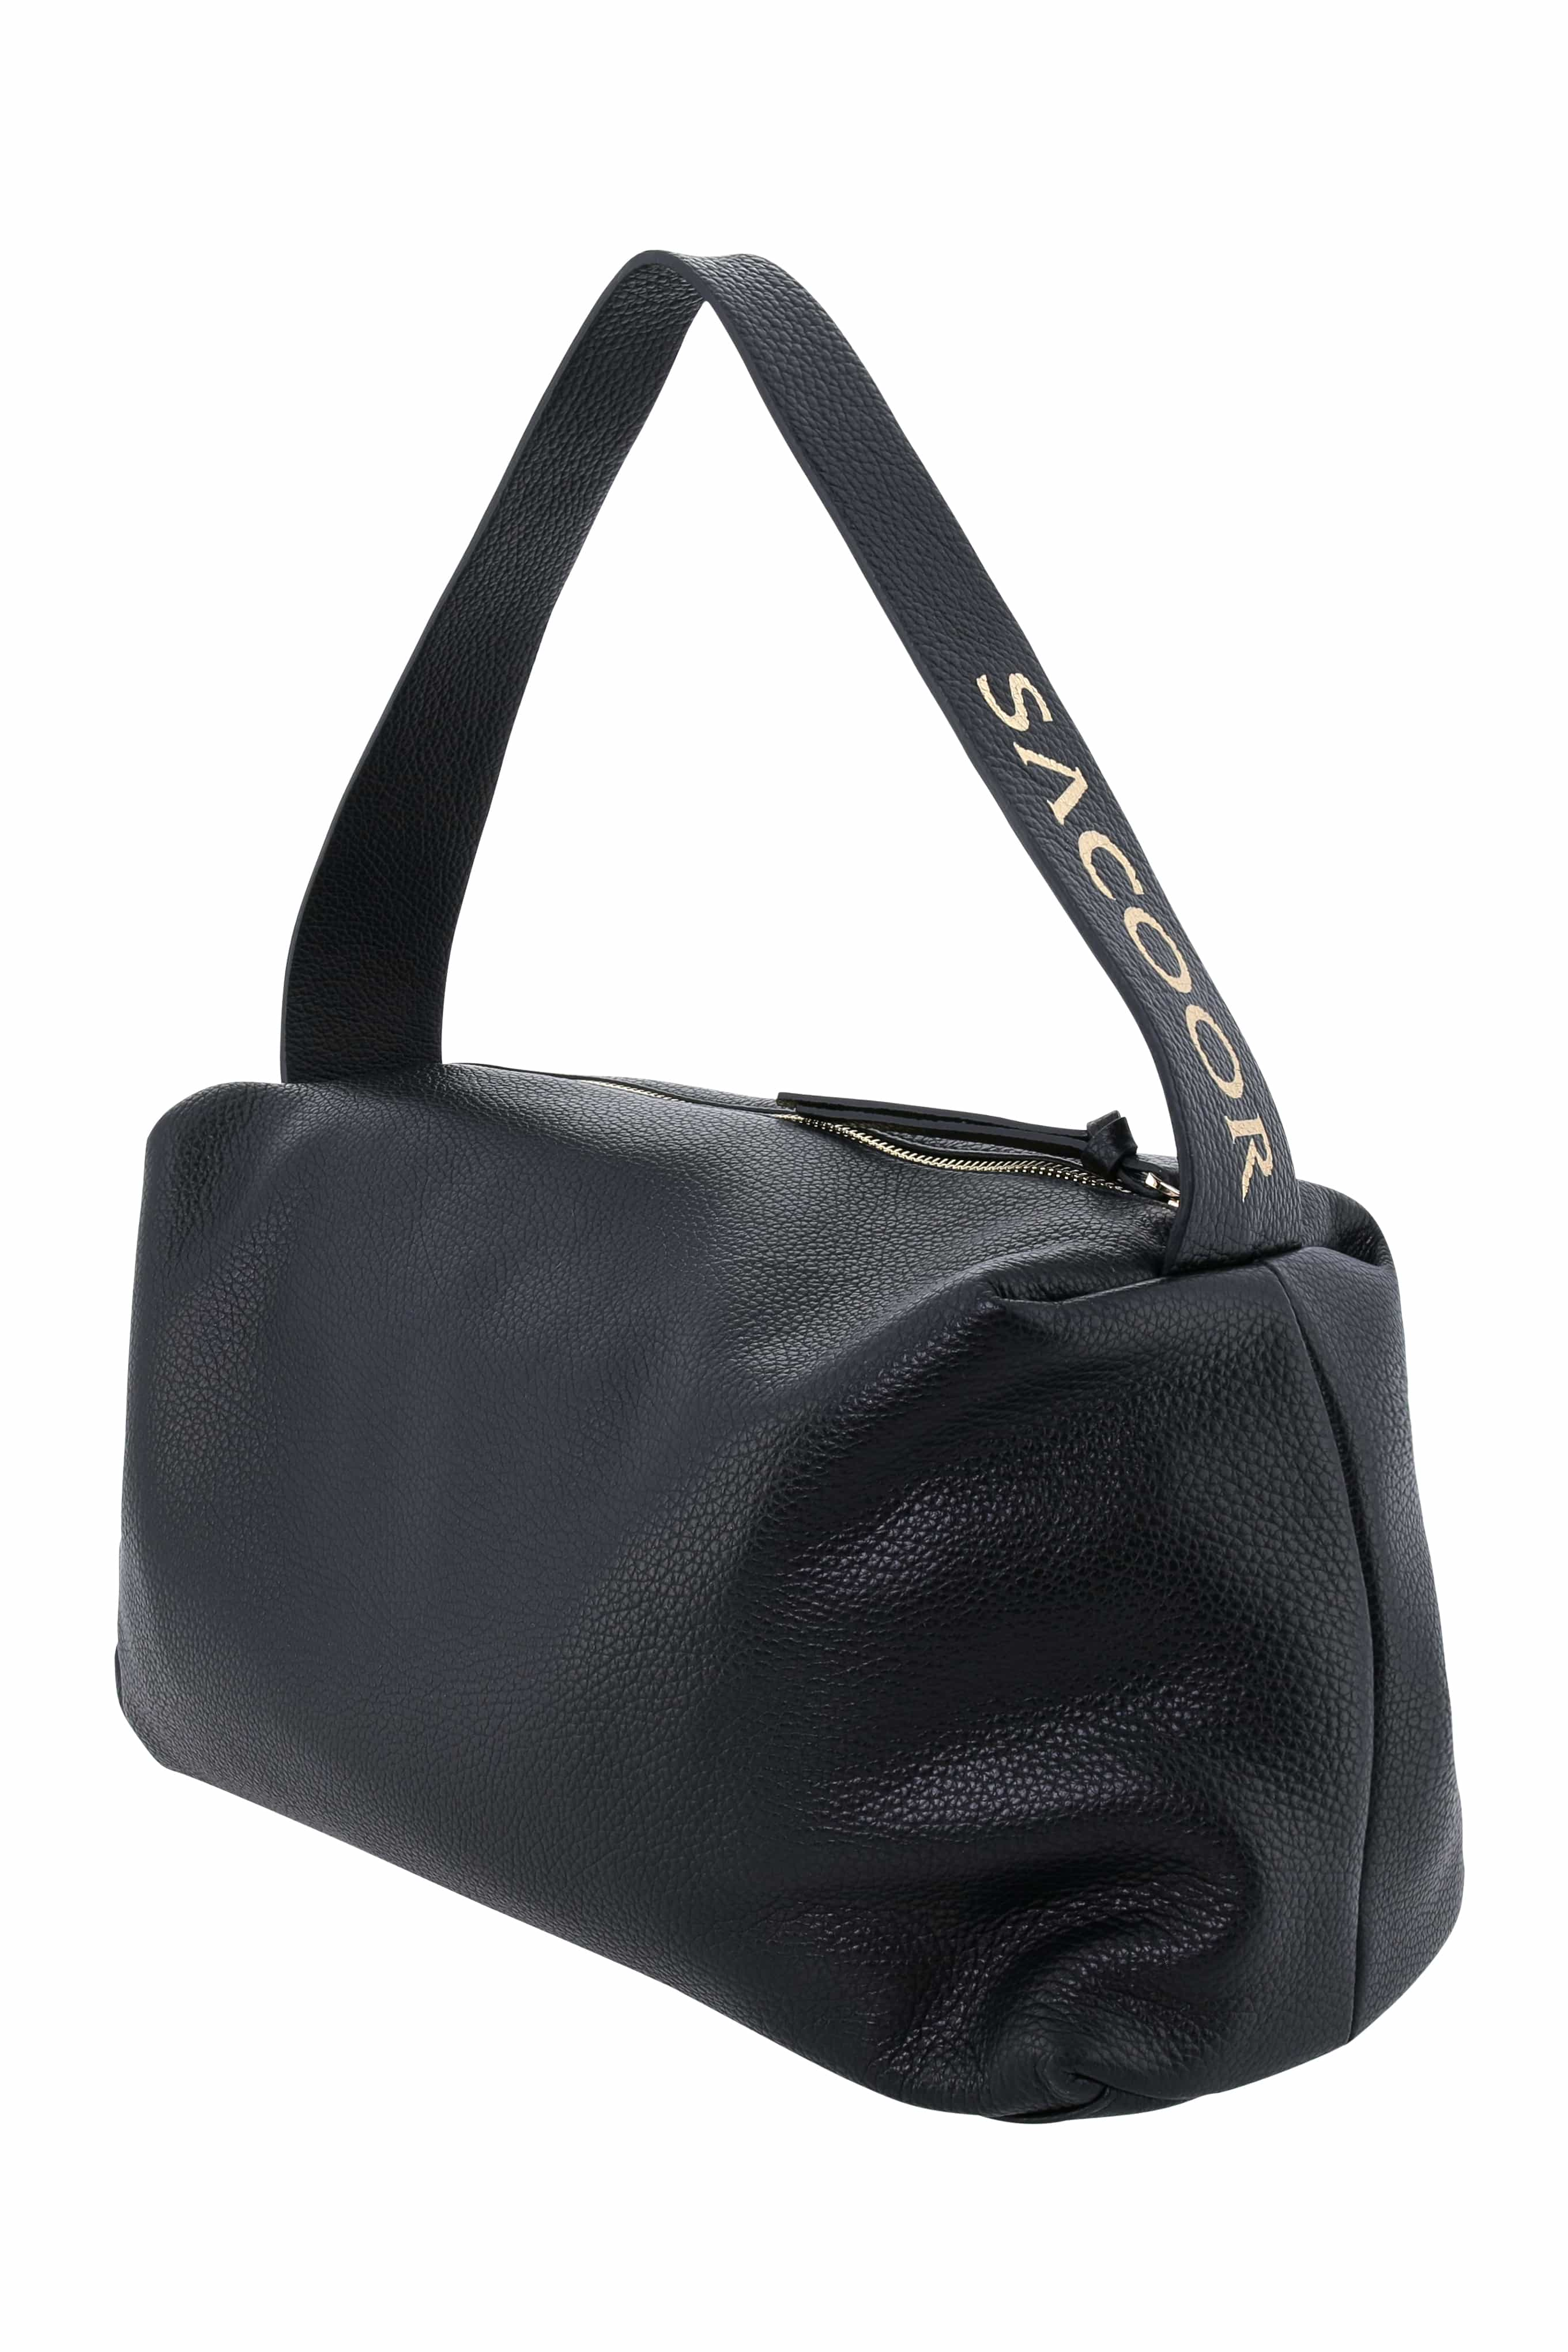 Bag Black Casual Woman